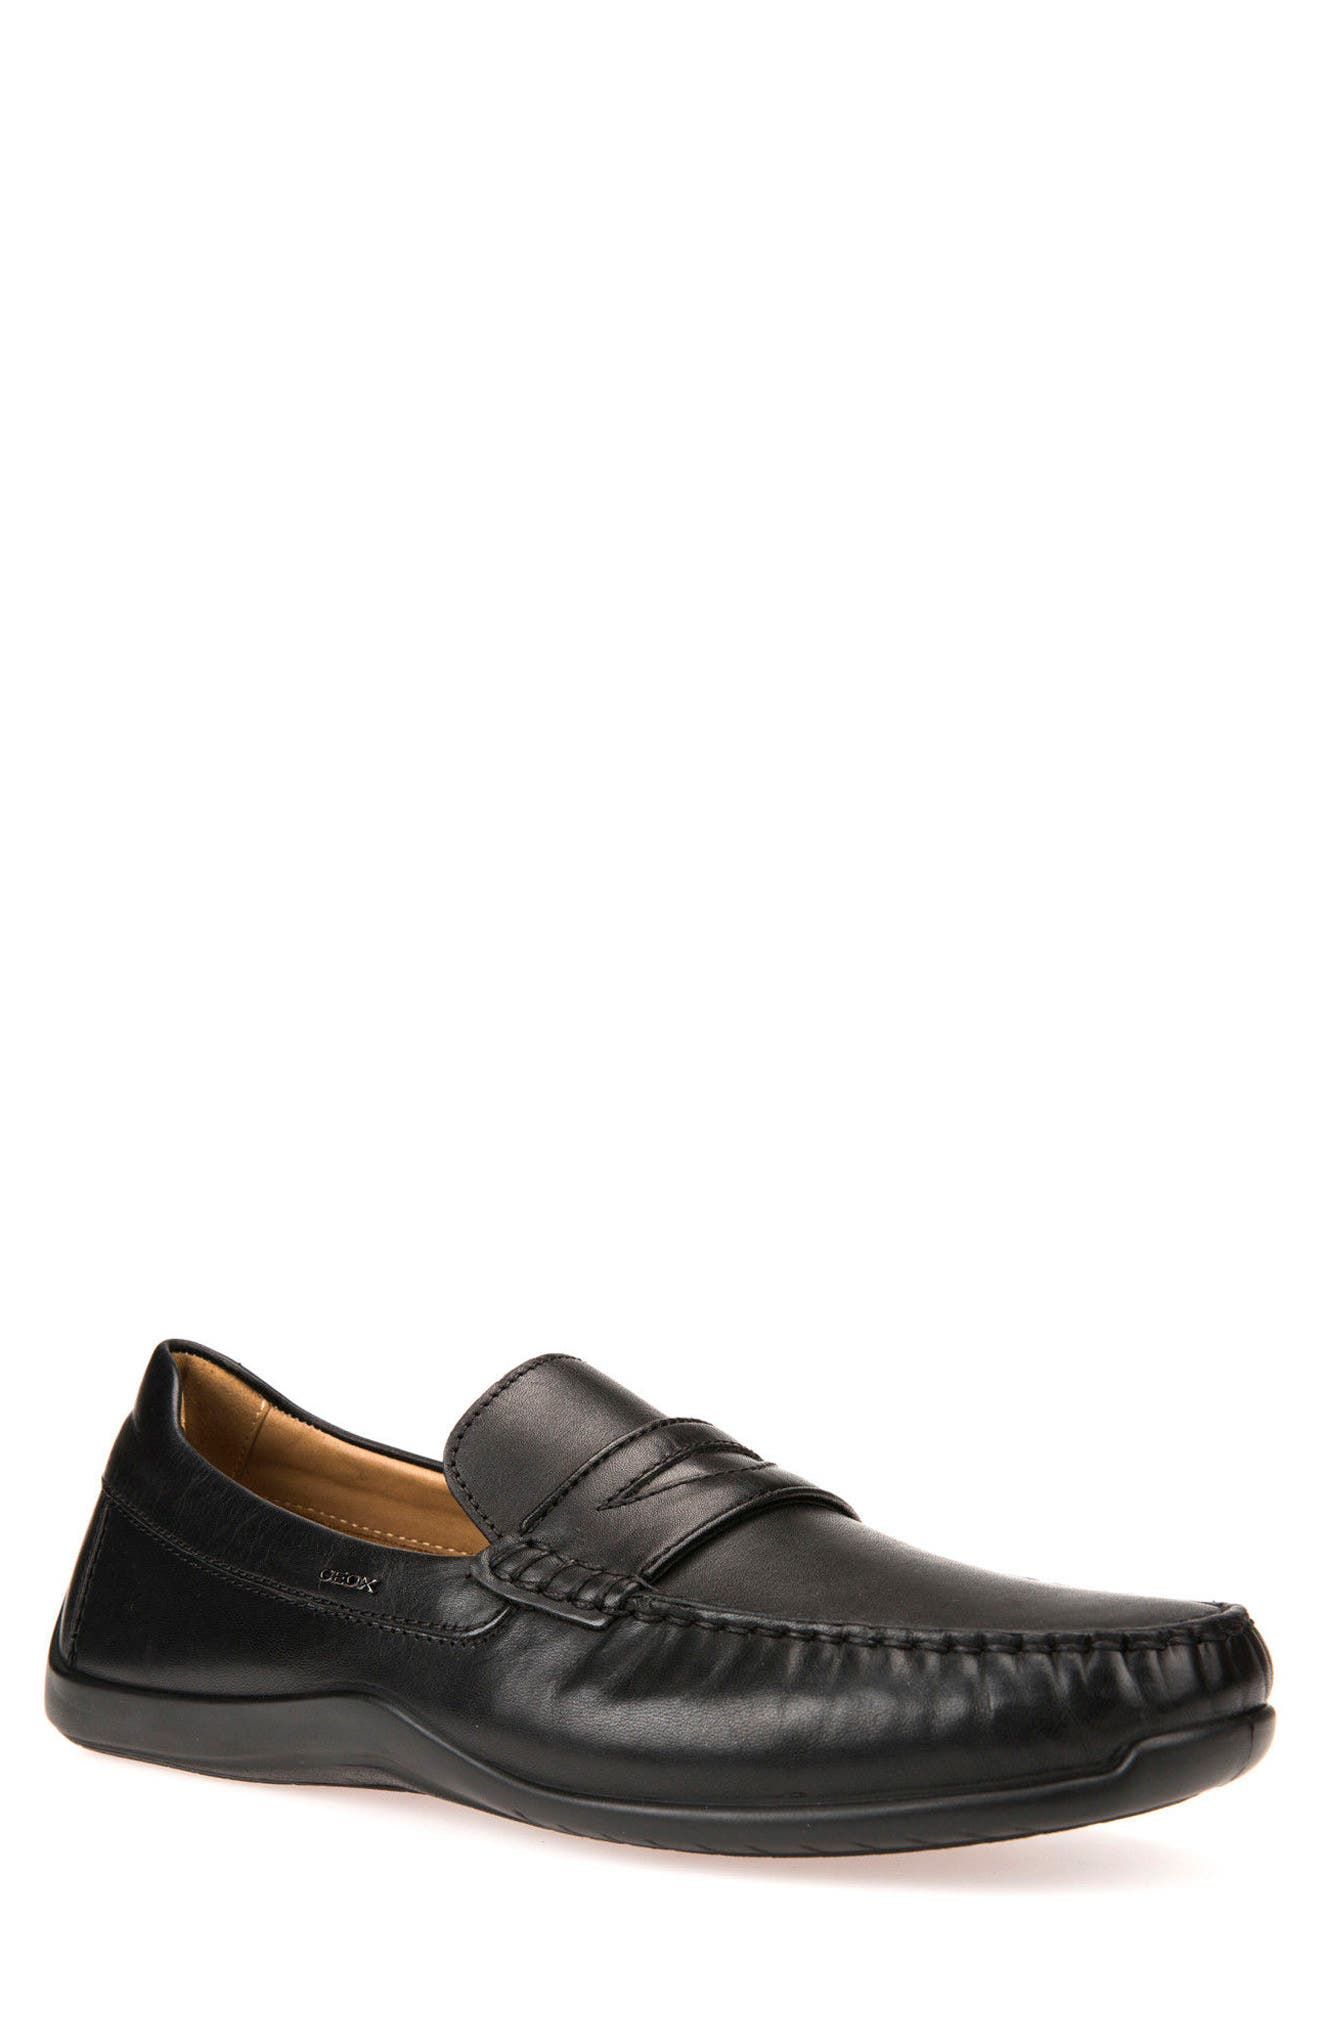 Alternate Image 1 Selected - Geox Xense Penny Loafer (Men)